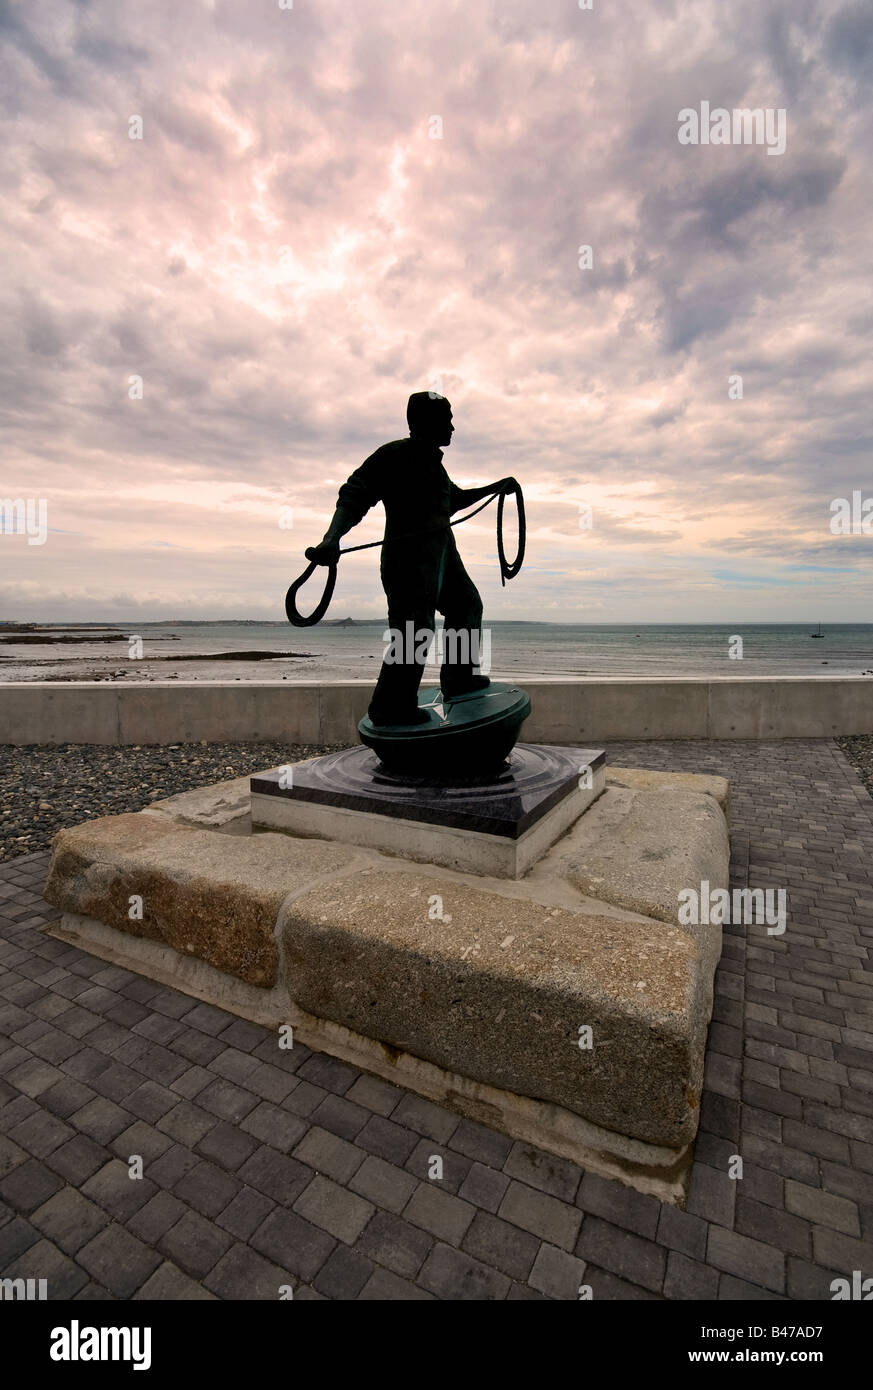 Newlyn Cornwall - A bronze statue commemorating dead and missing fisherman of Newlyn Cornwall. - Stock Image